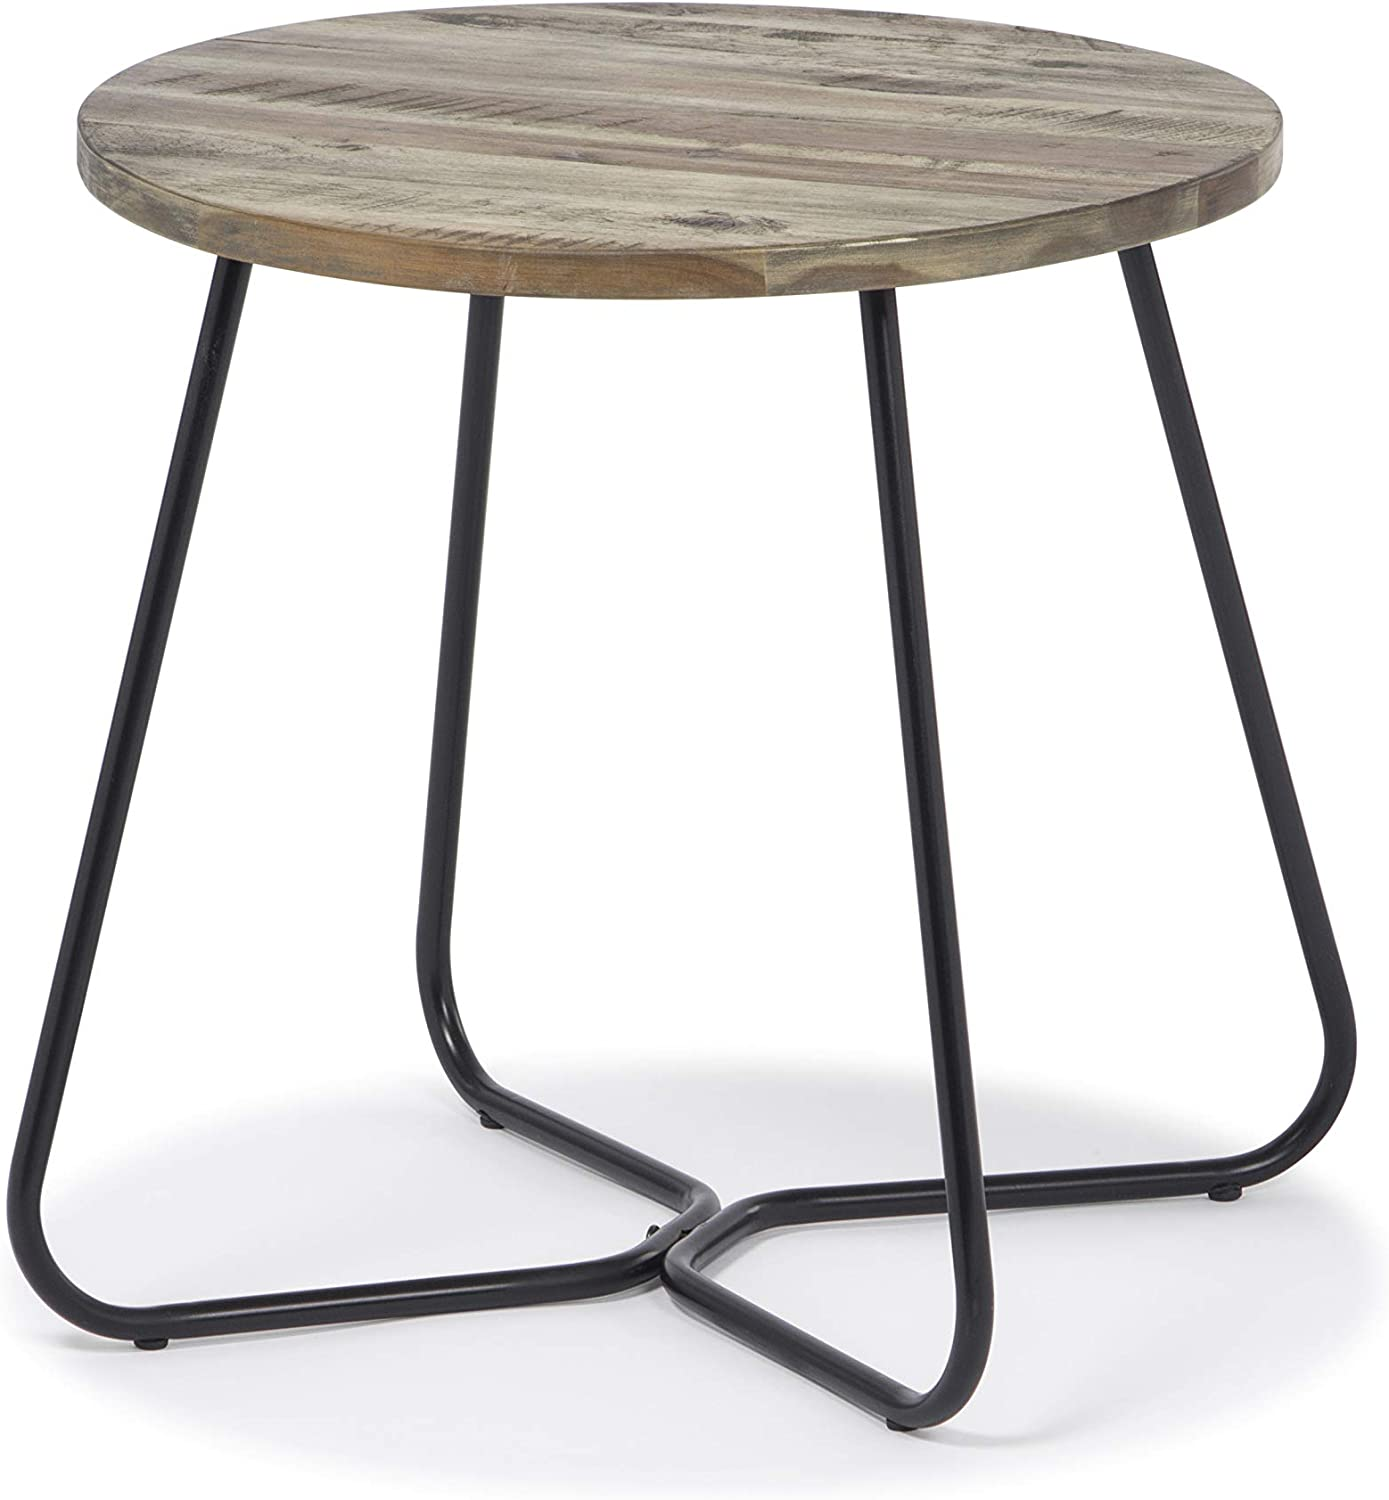 Ballena Solid Wood Rustic End Table  use as End, Side, Bedside Table - Living Bedroom Furniture (Brown)